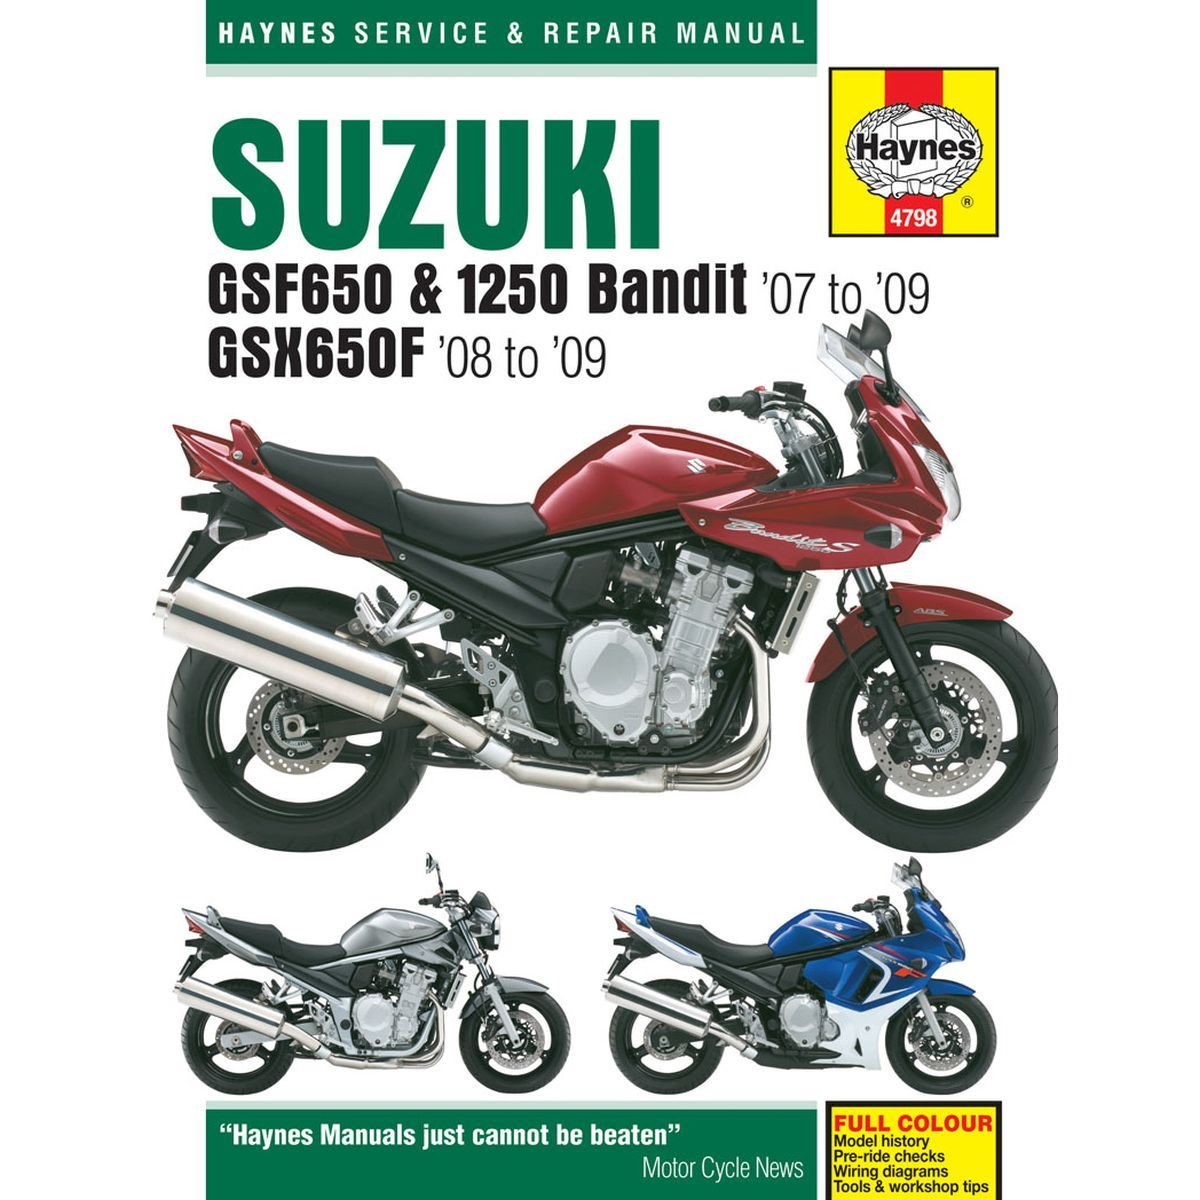 Suzuki gsf650, gsf1250 bandit repair manual 2007-2014 | haynes.